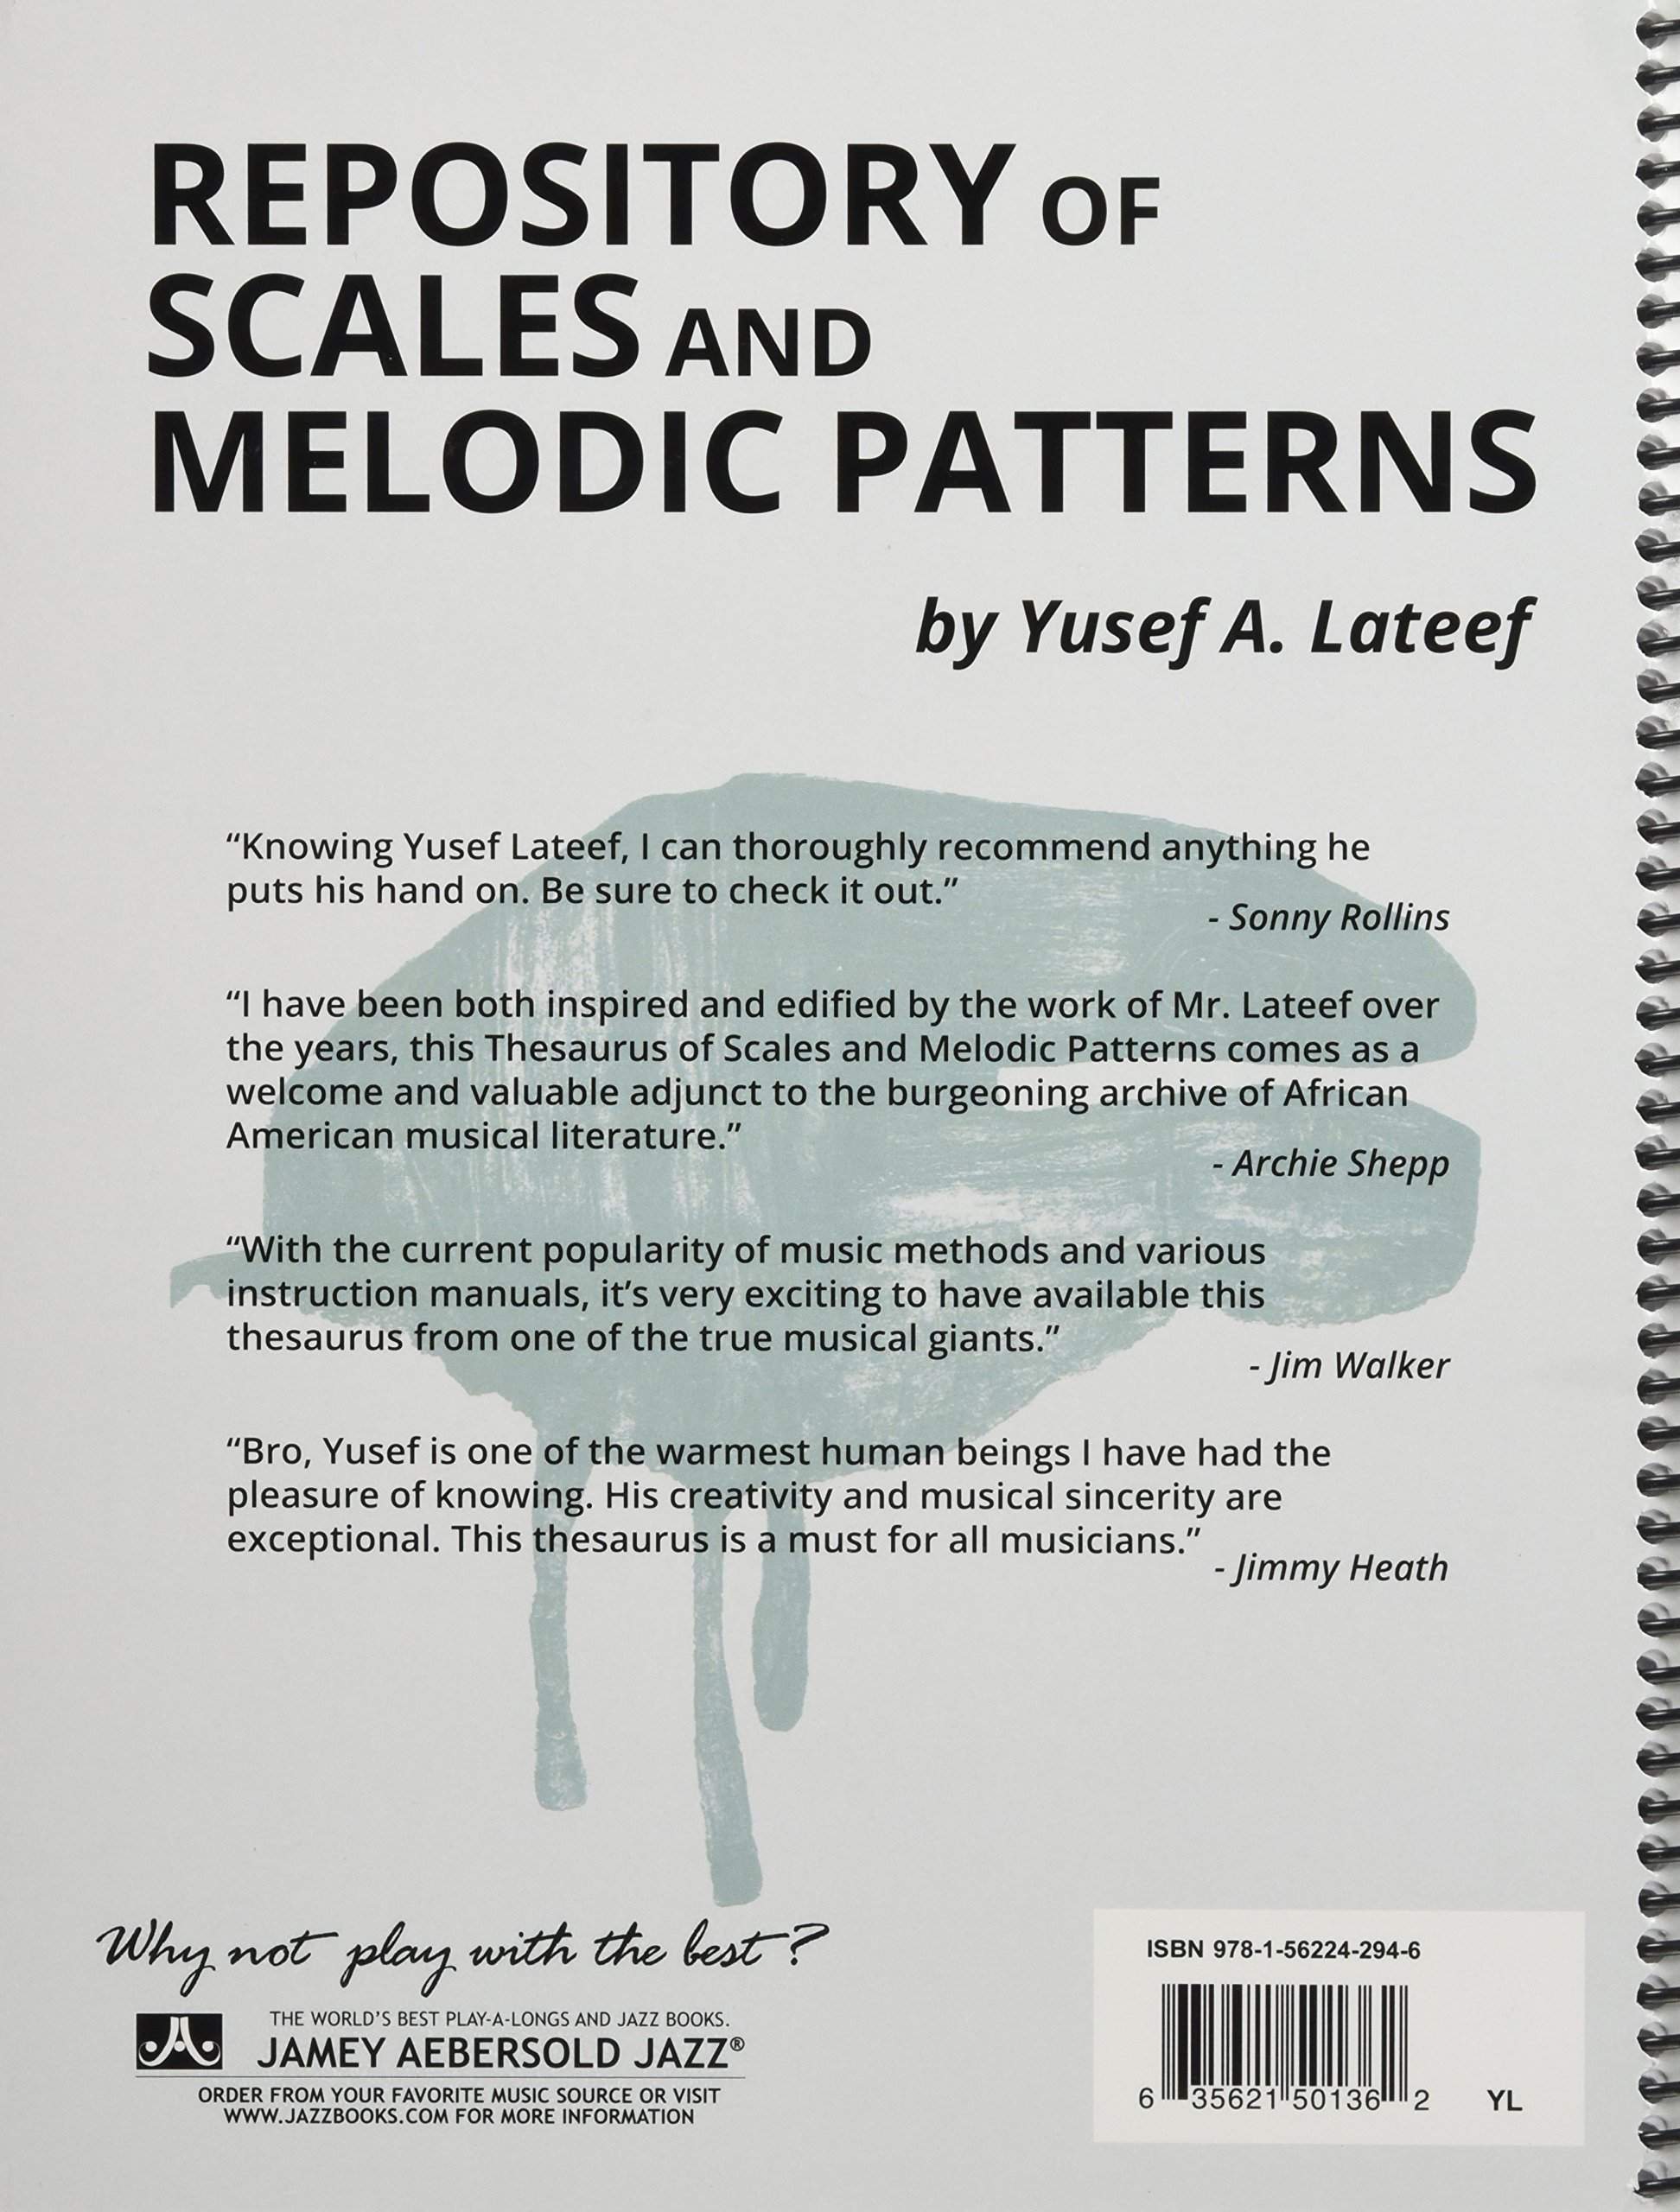 Repository of Scales and Melodic Patterns: Spiral-bound Book: Yusef A.  Lateef: 9781562242947: Amazon.com: Books